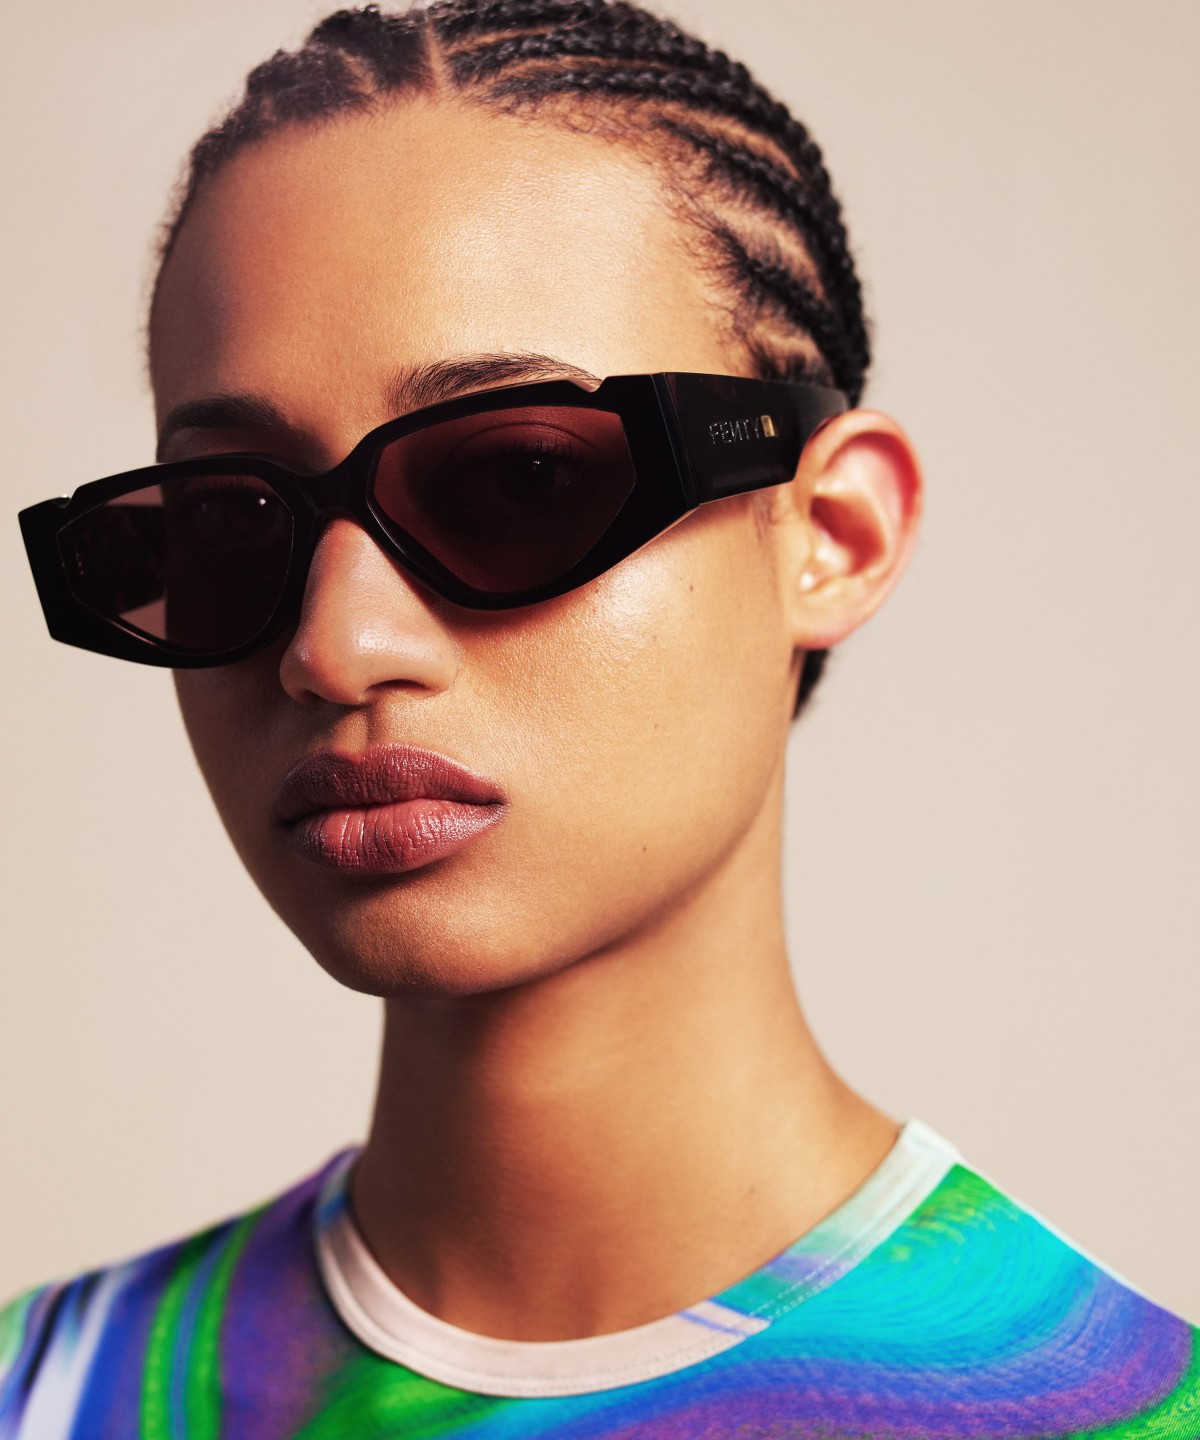 OFF RECORD SUNGLASSES by USD, available on fenty.com for $330 Rihanna Sunglasses Exact Product